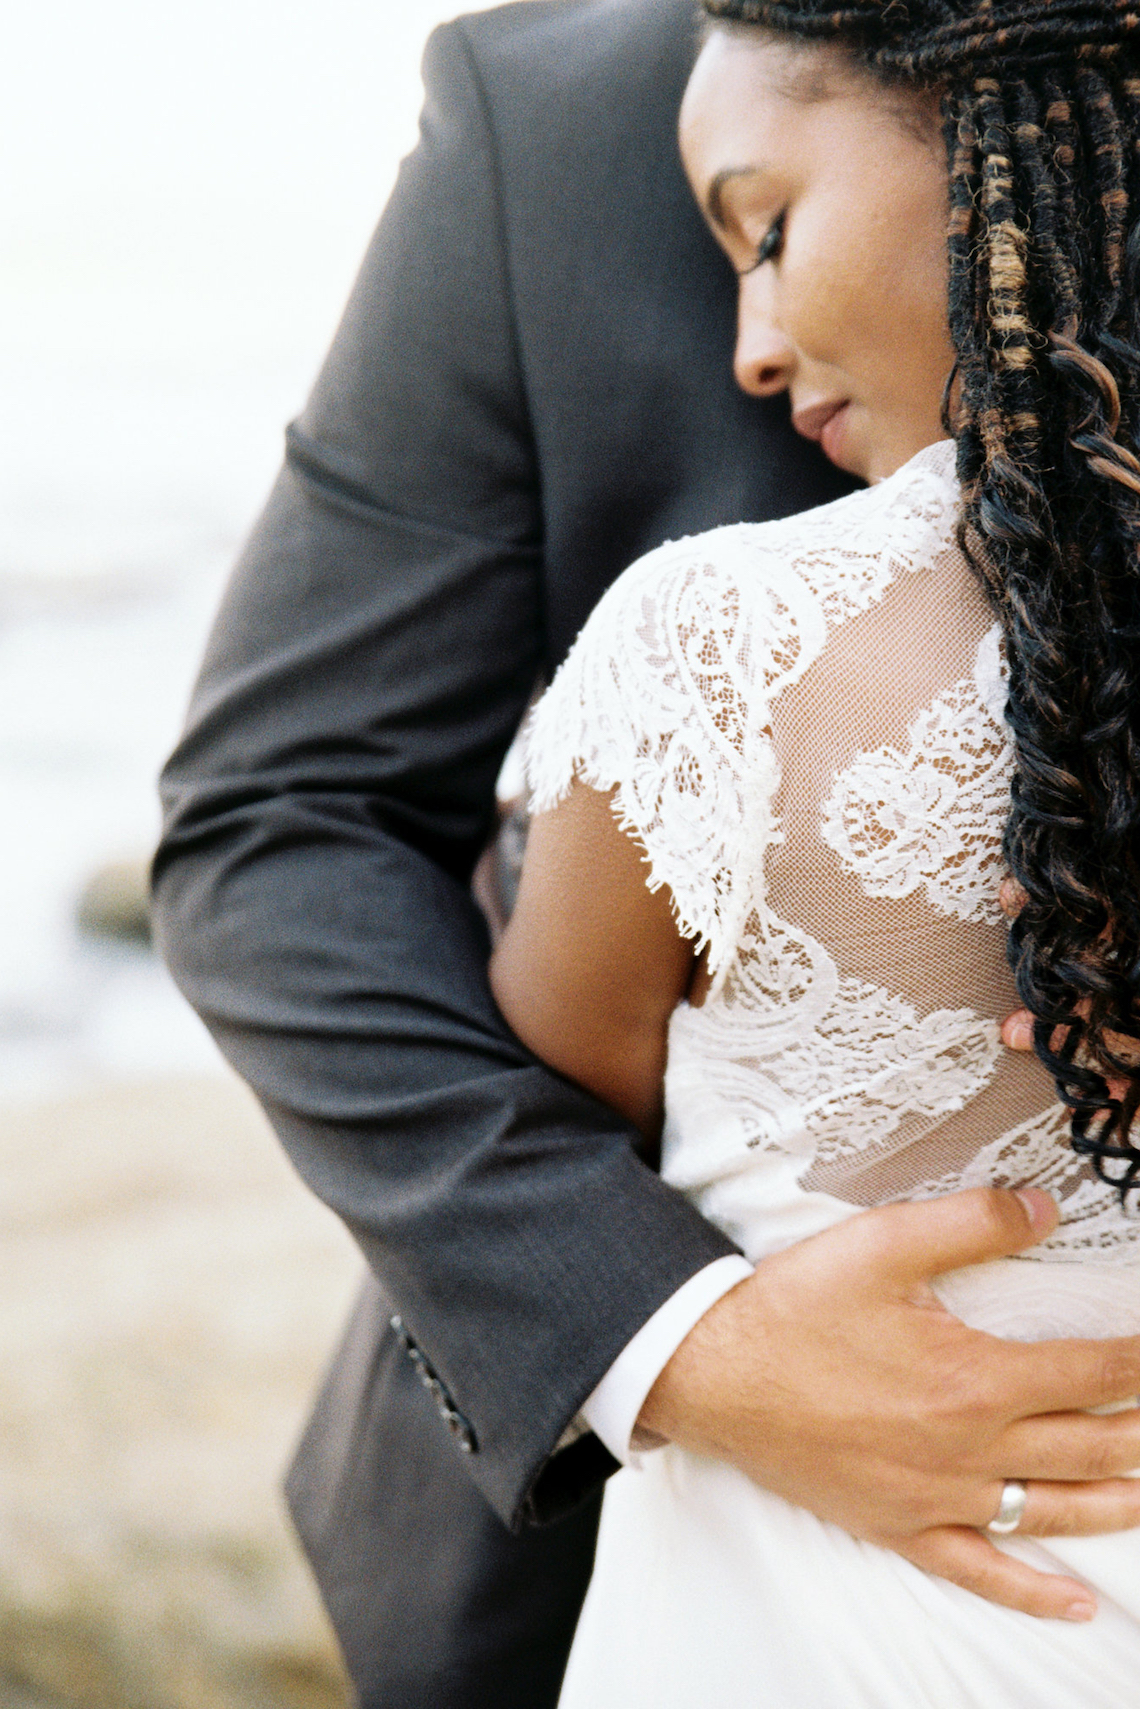 Blackberry and Pear Dreamy Beach Elopement Inspiration – Troy Meikle 26